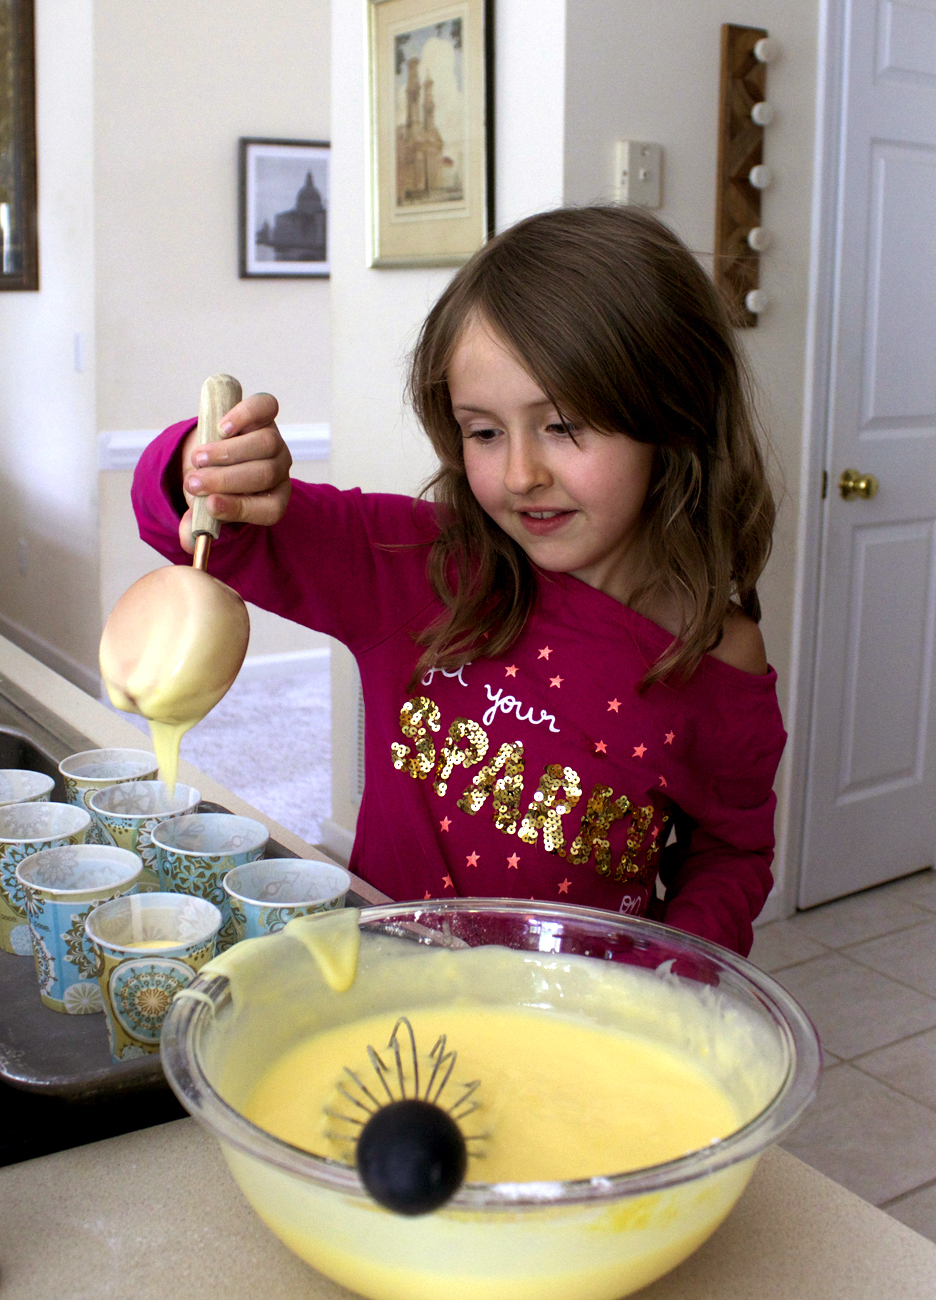 pour 1/2 cups of pudding per cup